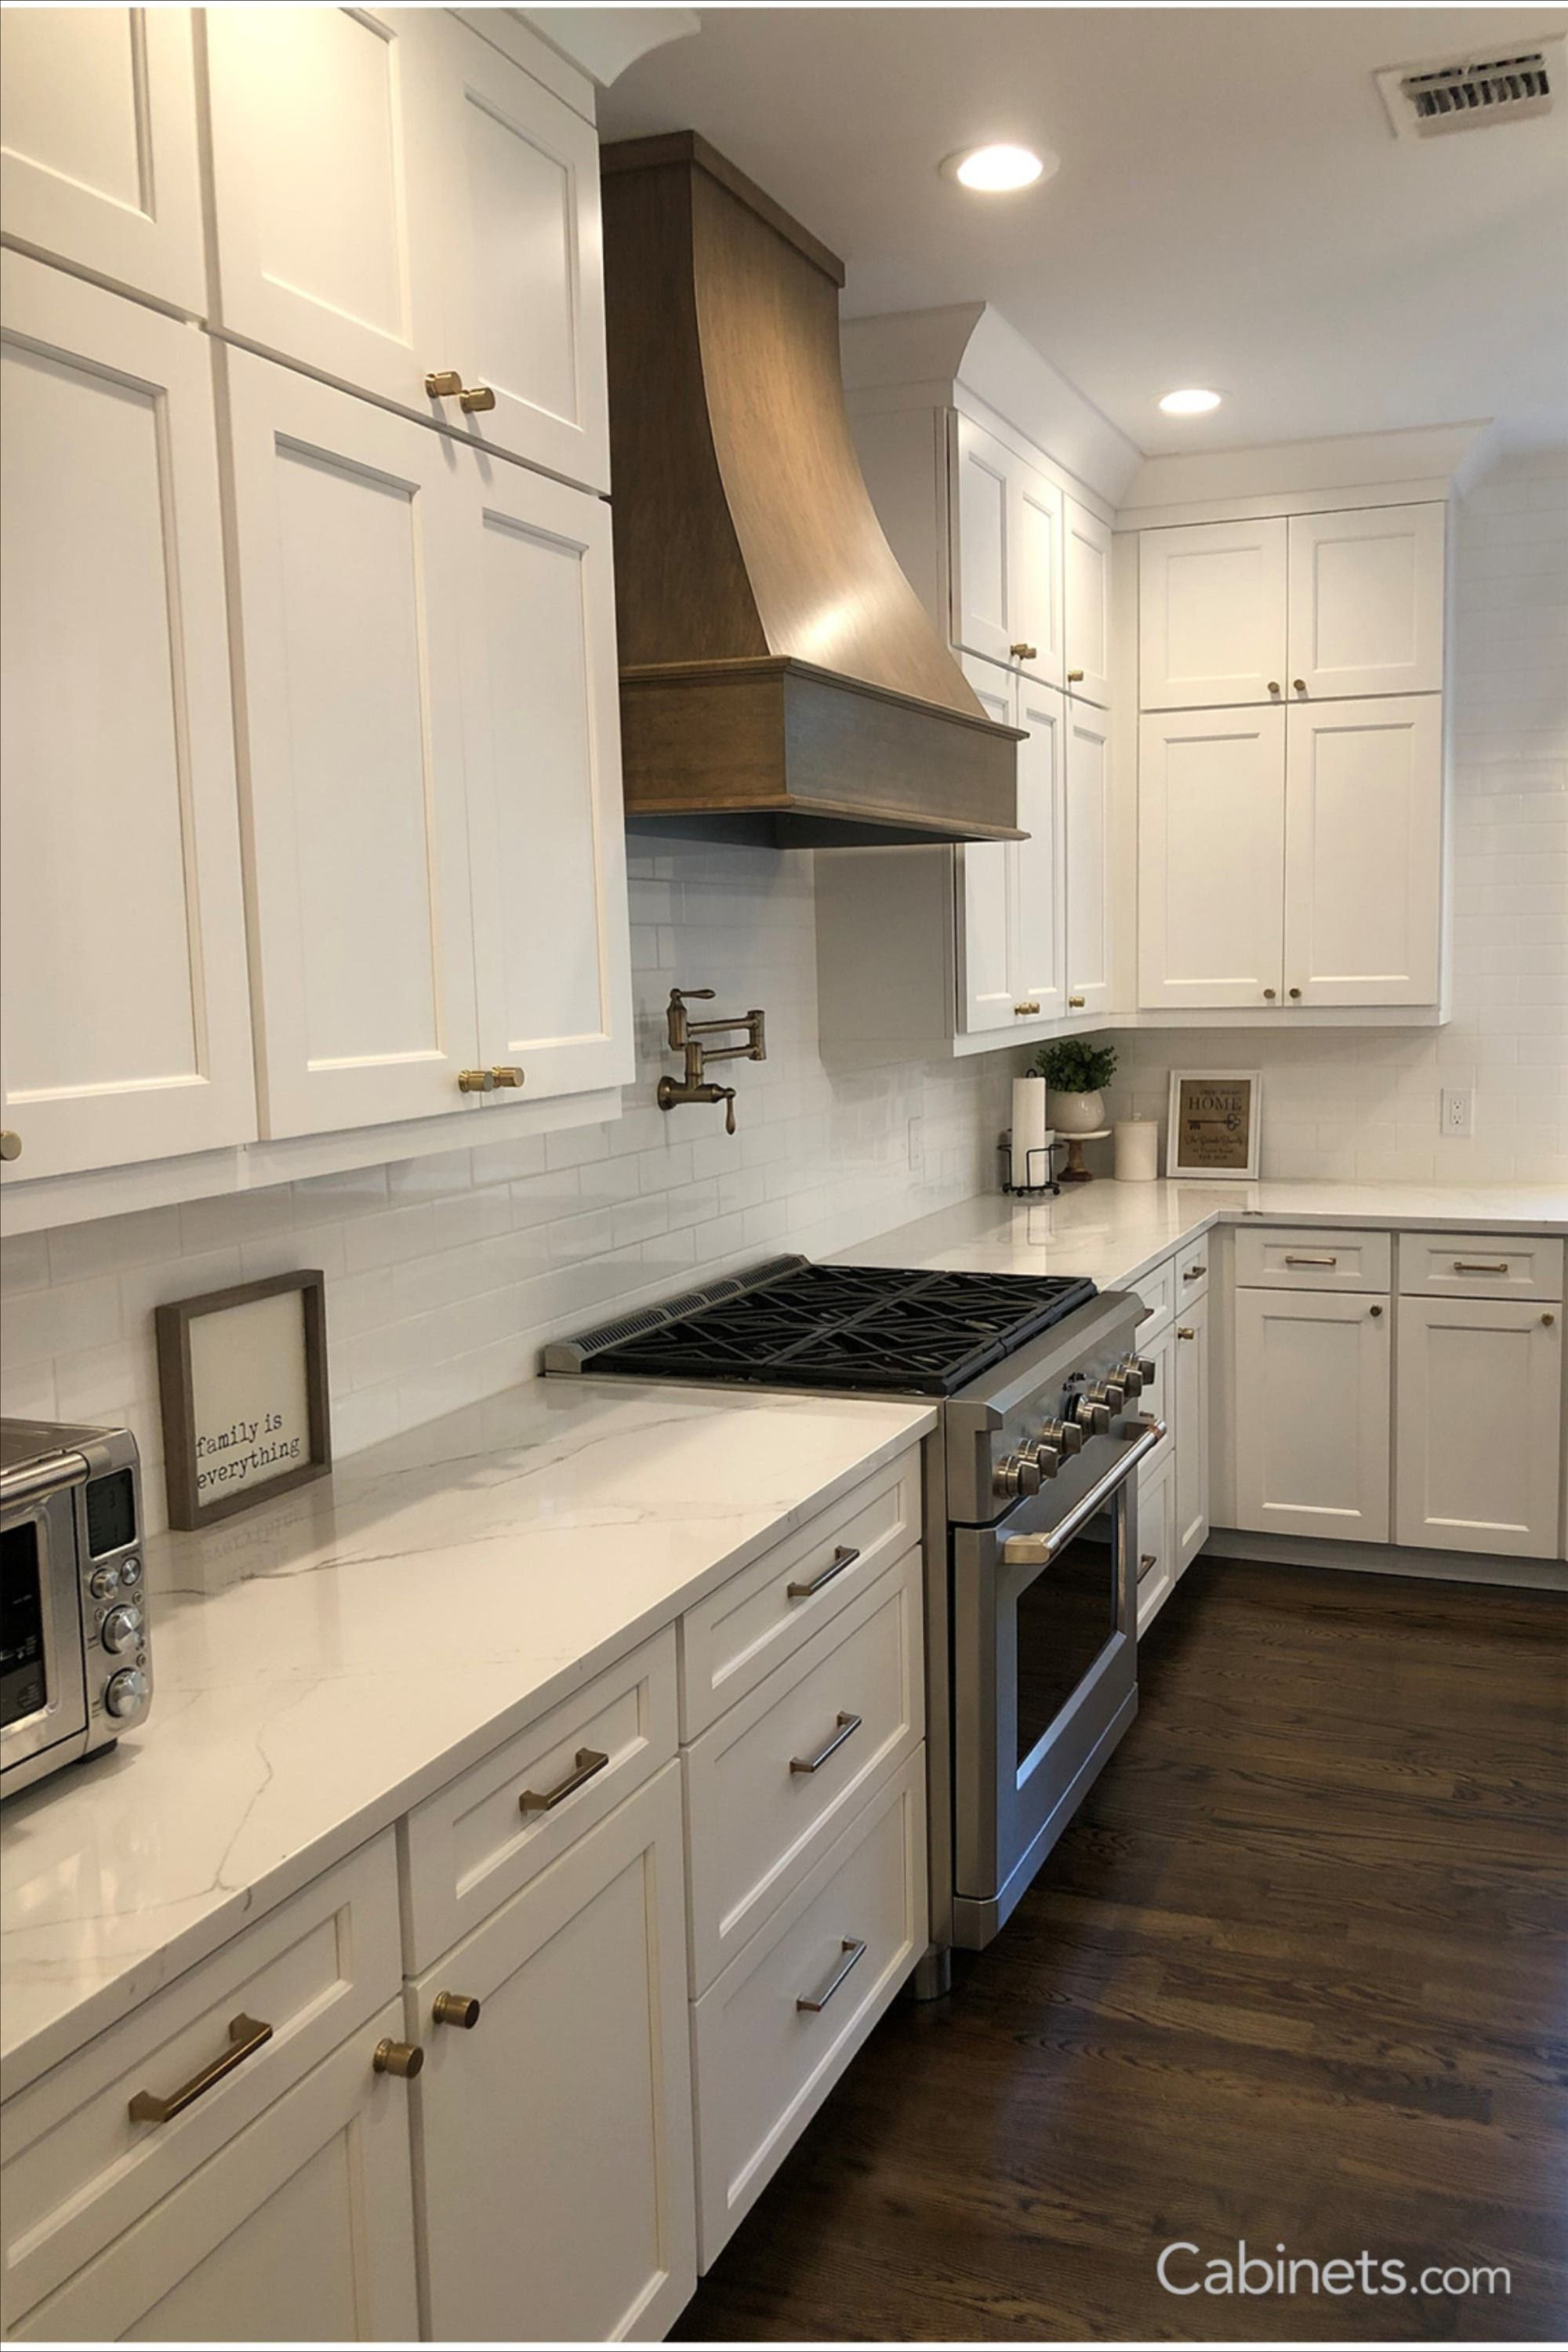 36+ White shaker style kitchen cabinets type